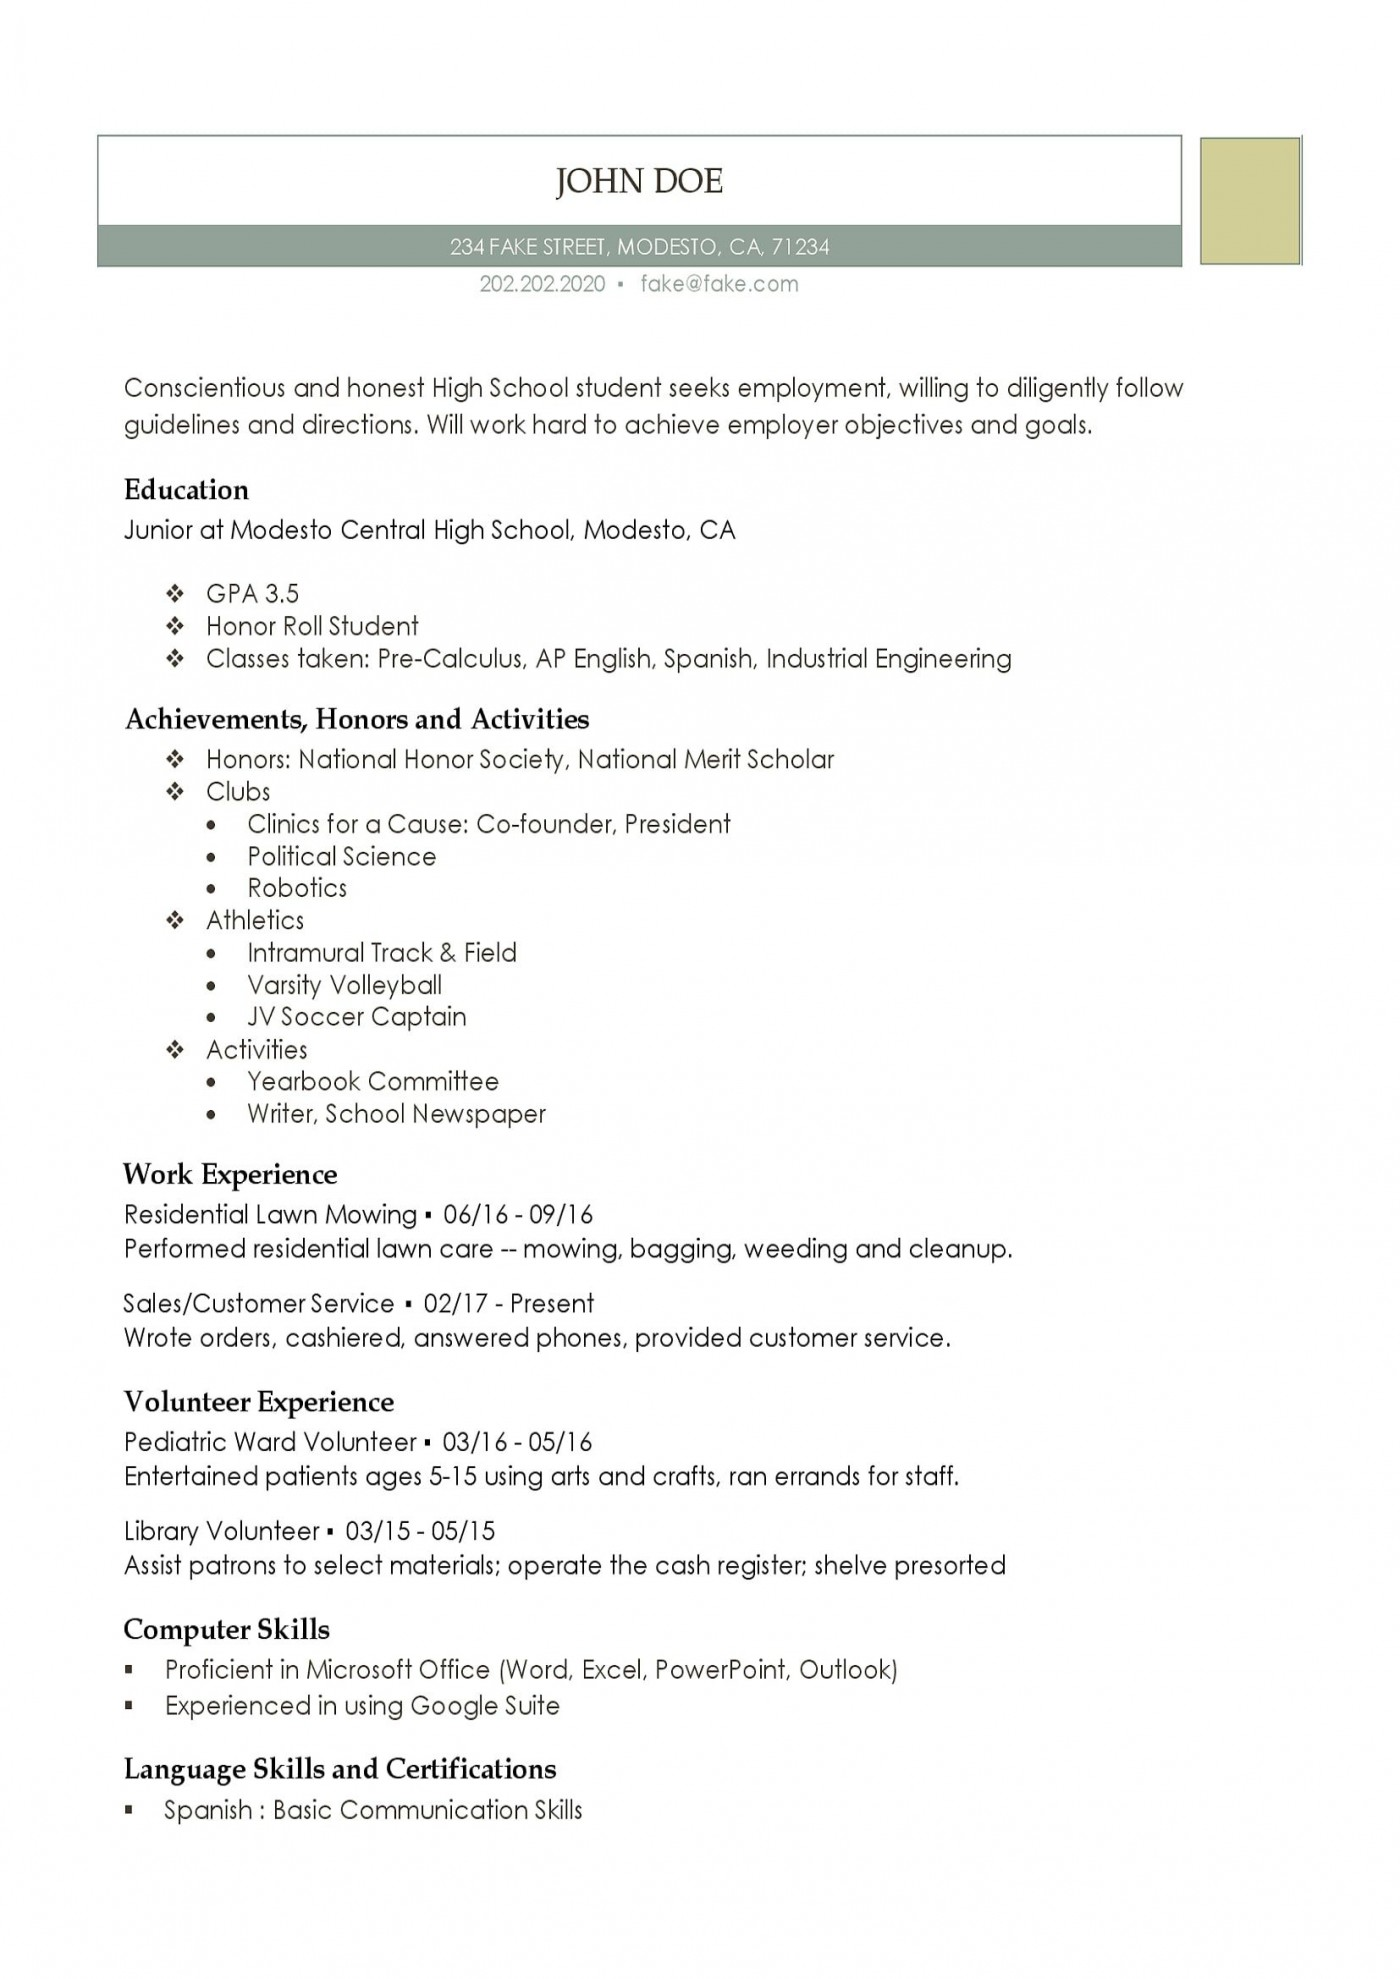 002 Incredible Student Resume Template Word Image  Download College Microsoft Free1400